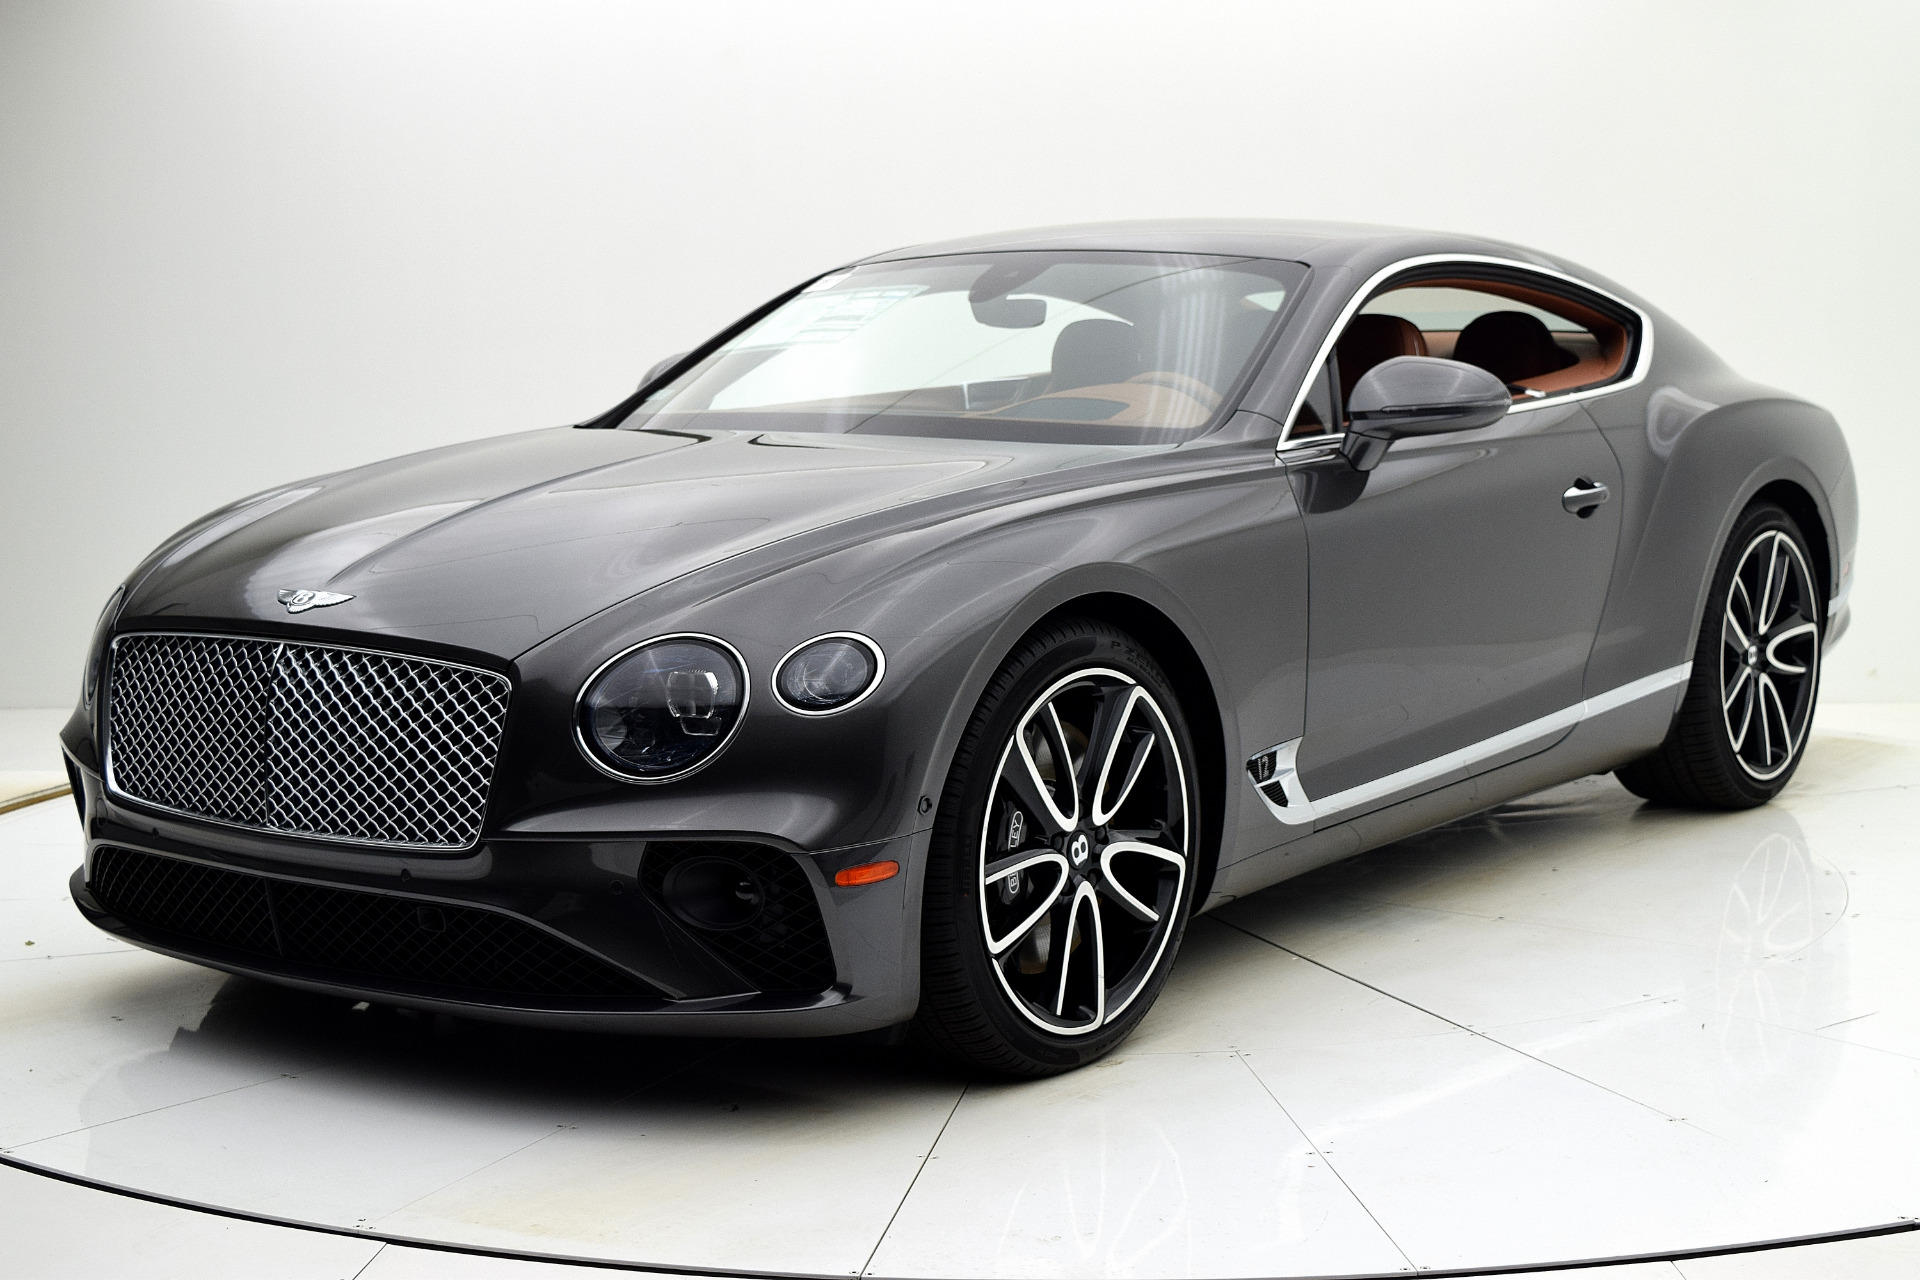 New 2020 Bentley Continental GT W12 Coupe for sale Sold at Bentley Palmyra N.J. in Palmyra NJ 08065 2